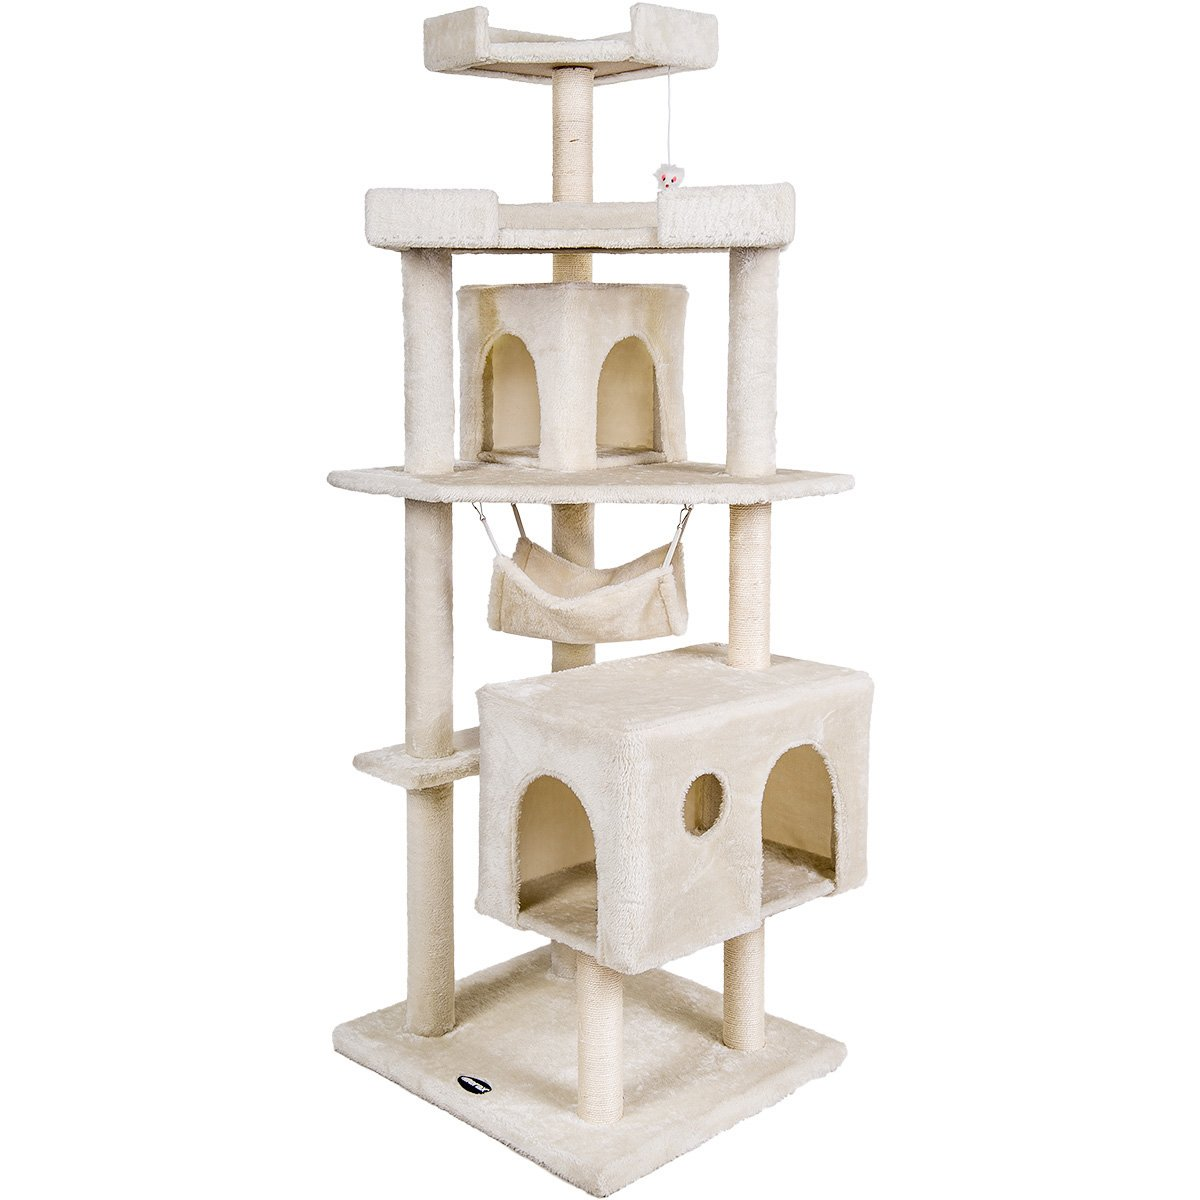 Merax Cat Tree Cat Tower With Condo House Furniture by Merax